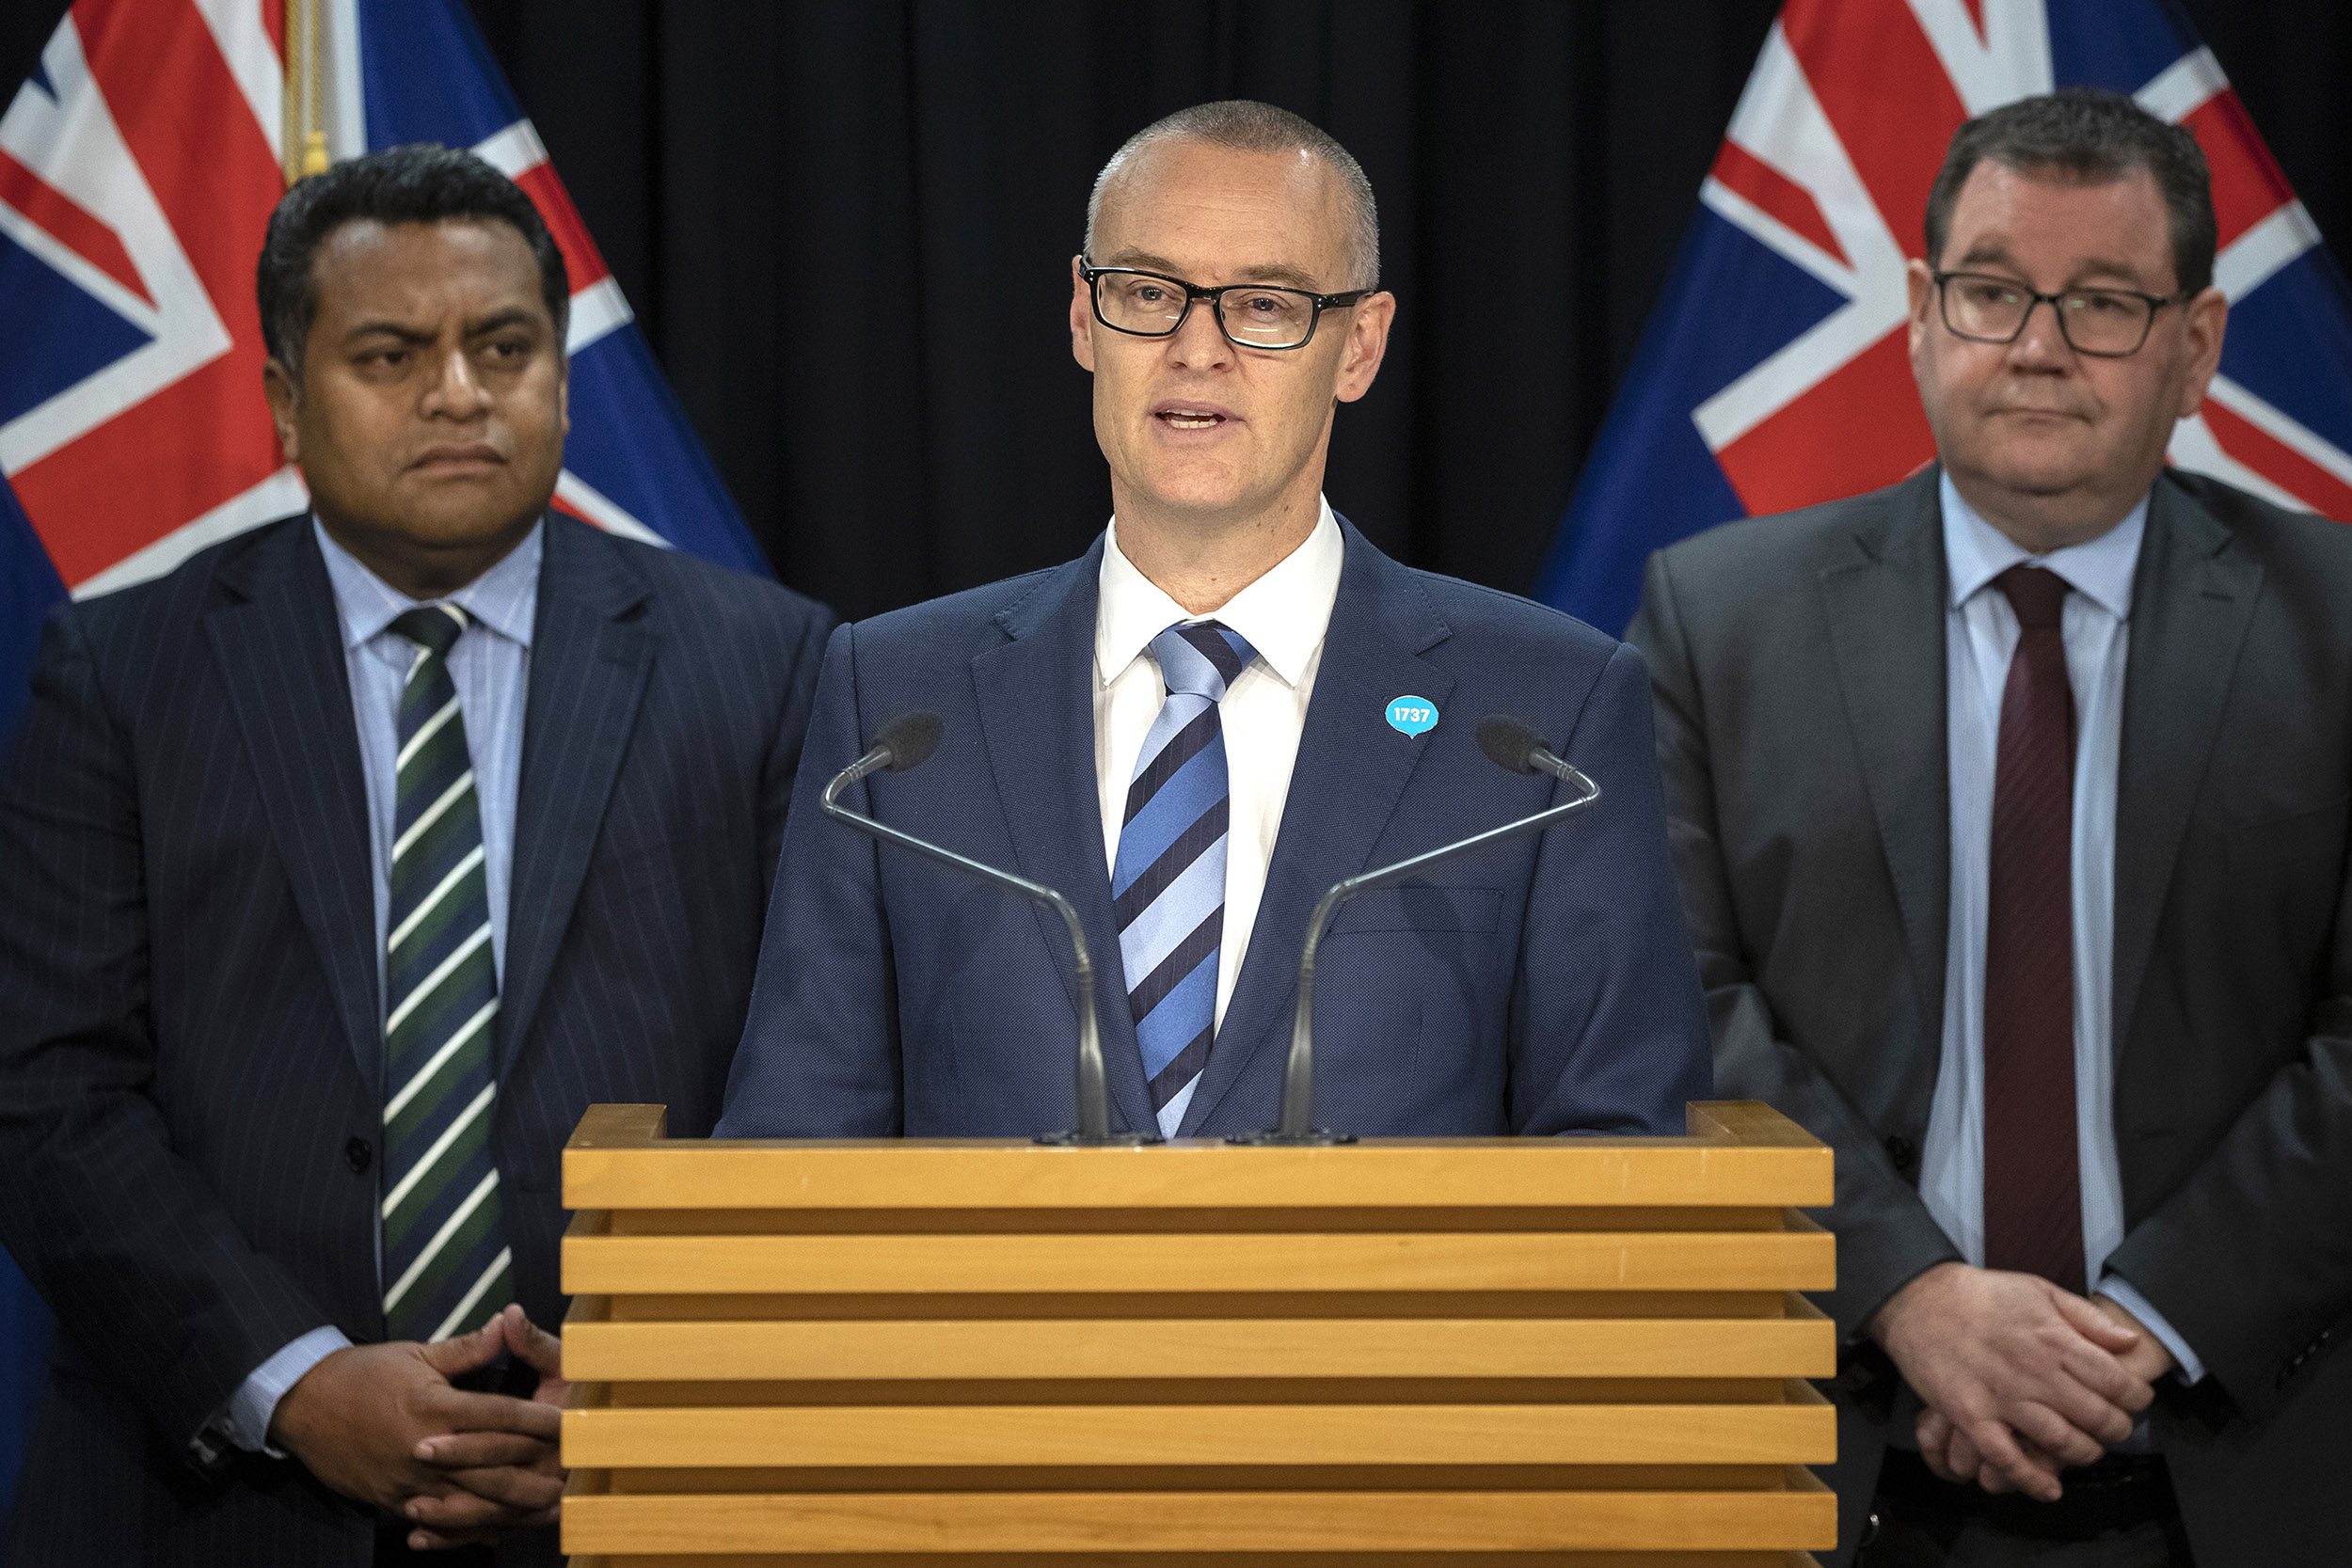 New Zealand Health Minister David Clark, center, announces his resignation during a press conference on July 2.